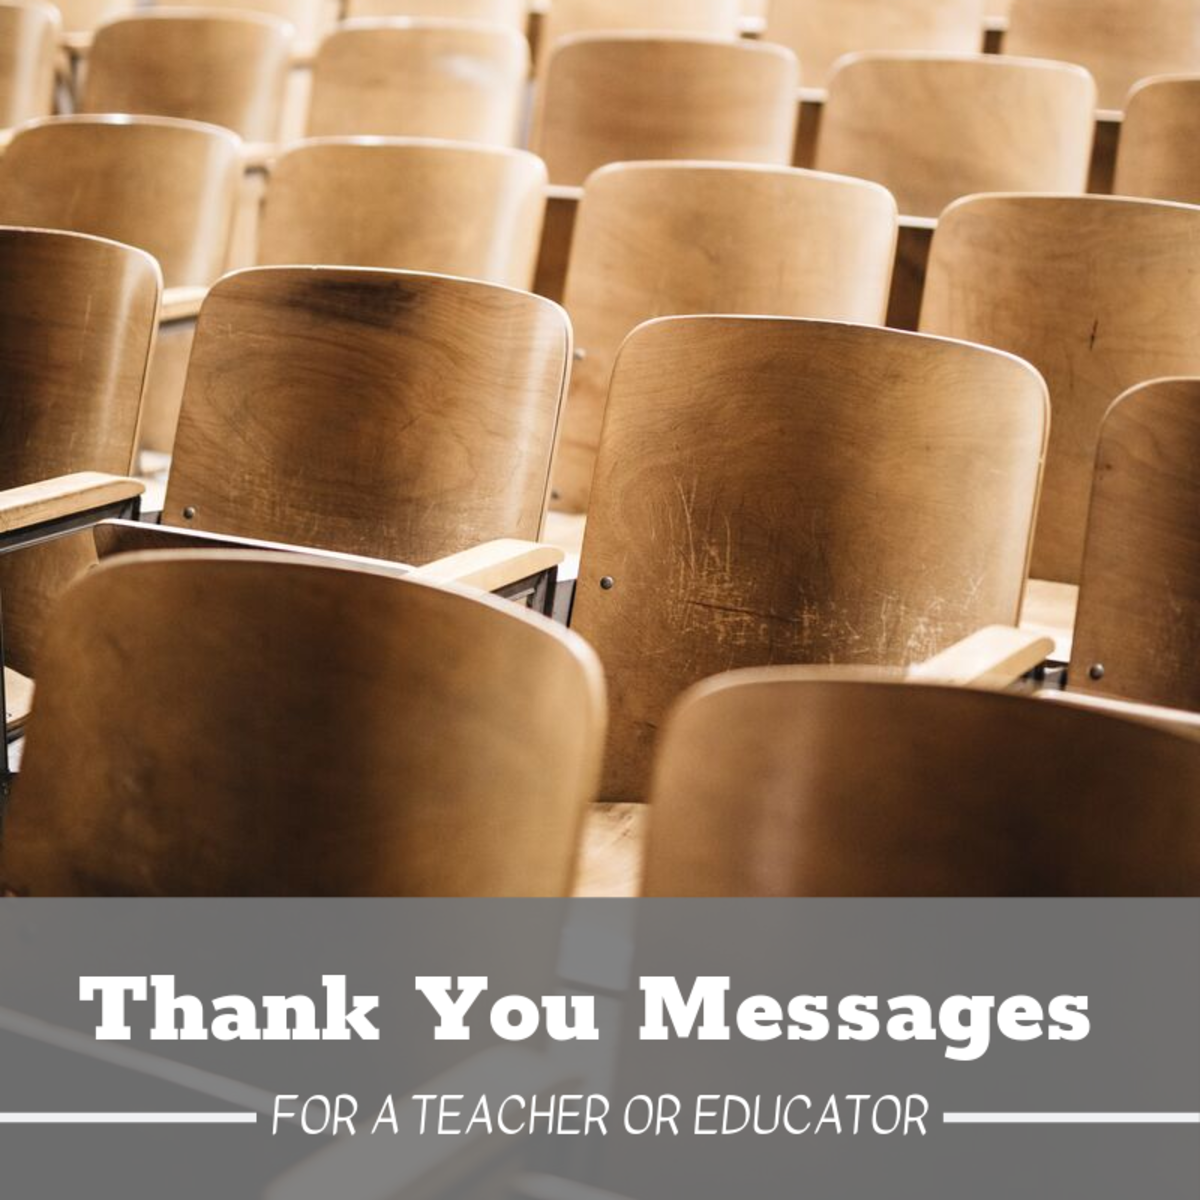 Thank You Messages for Teachers